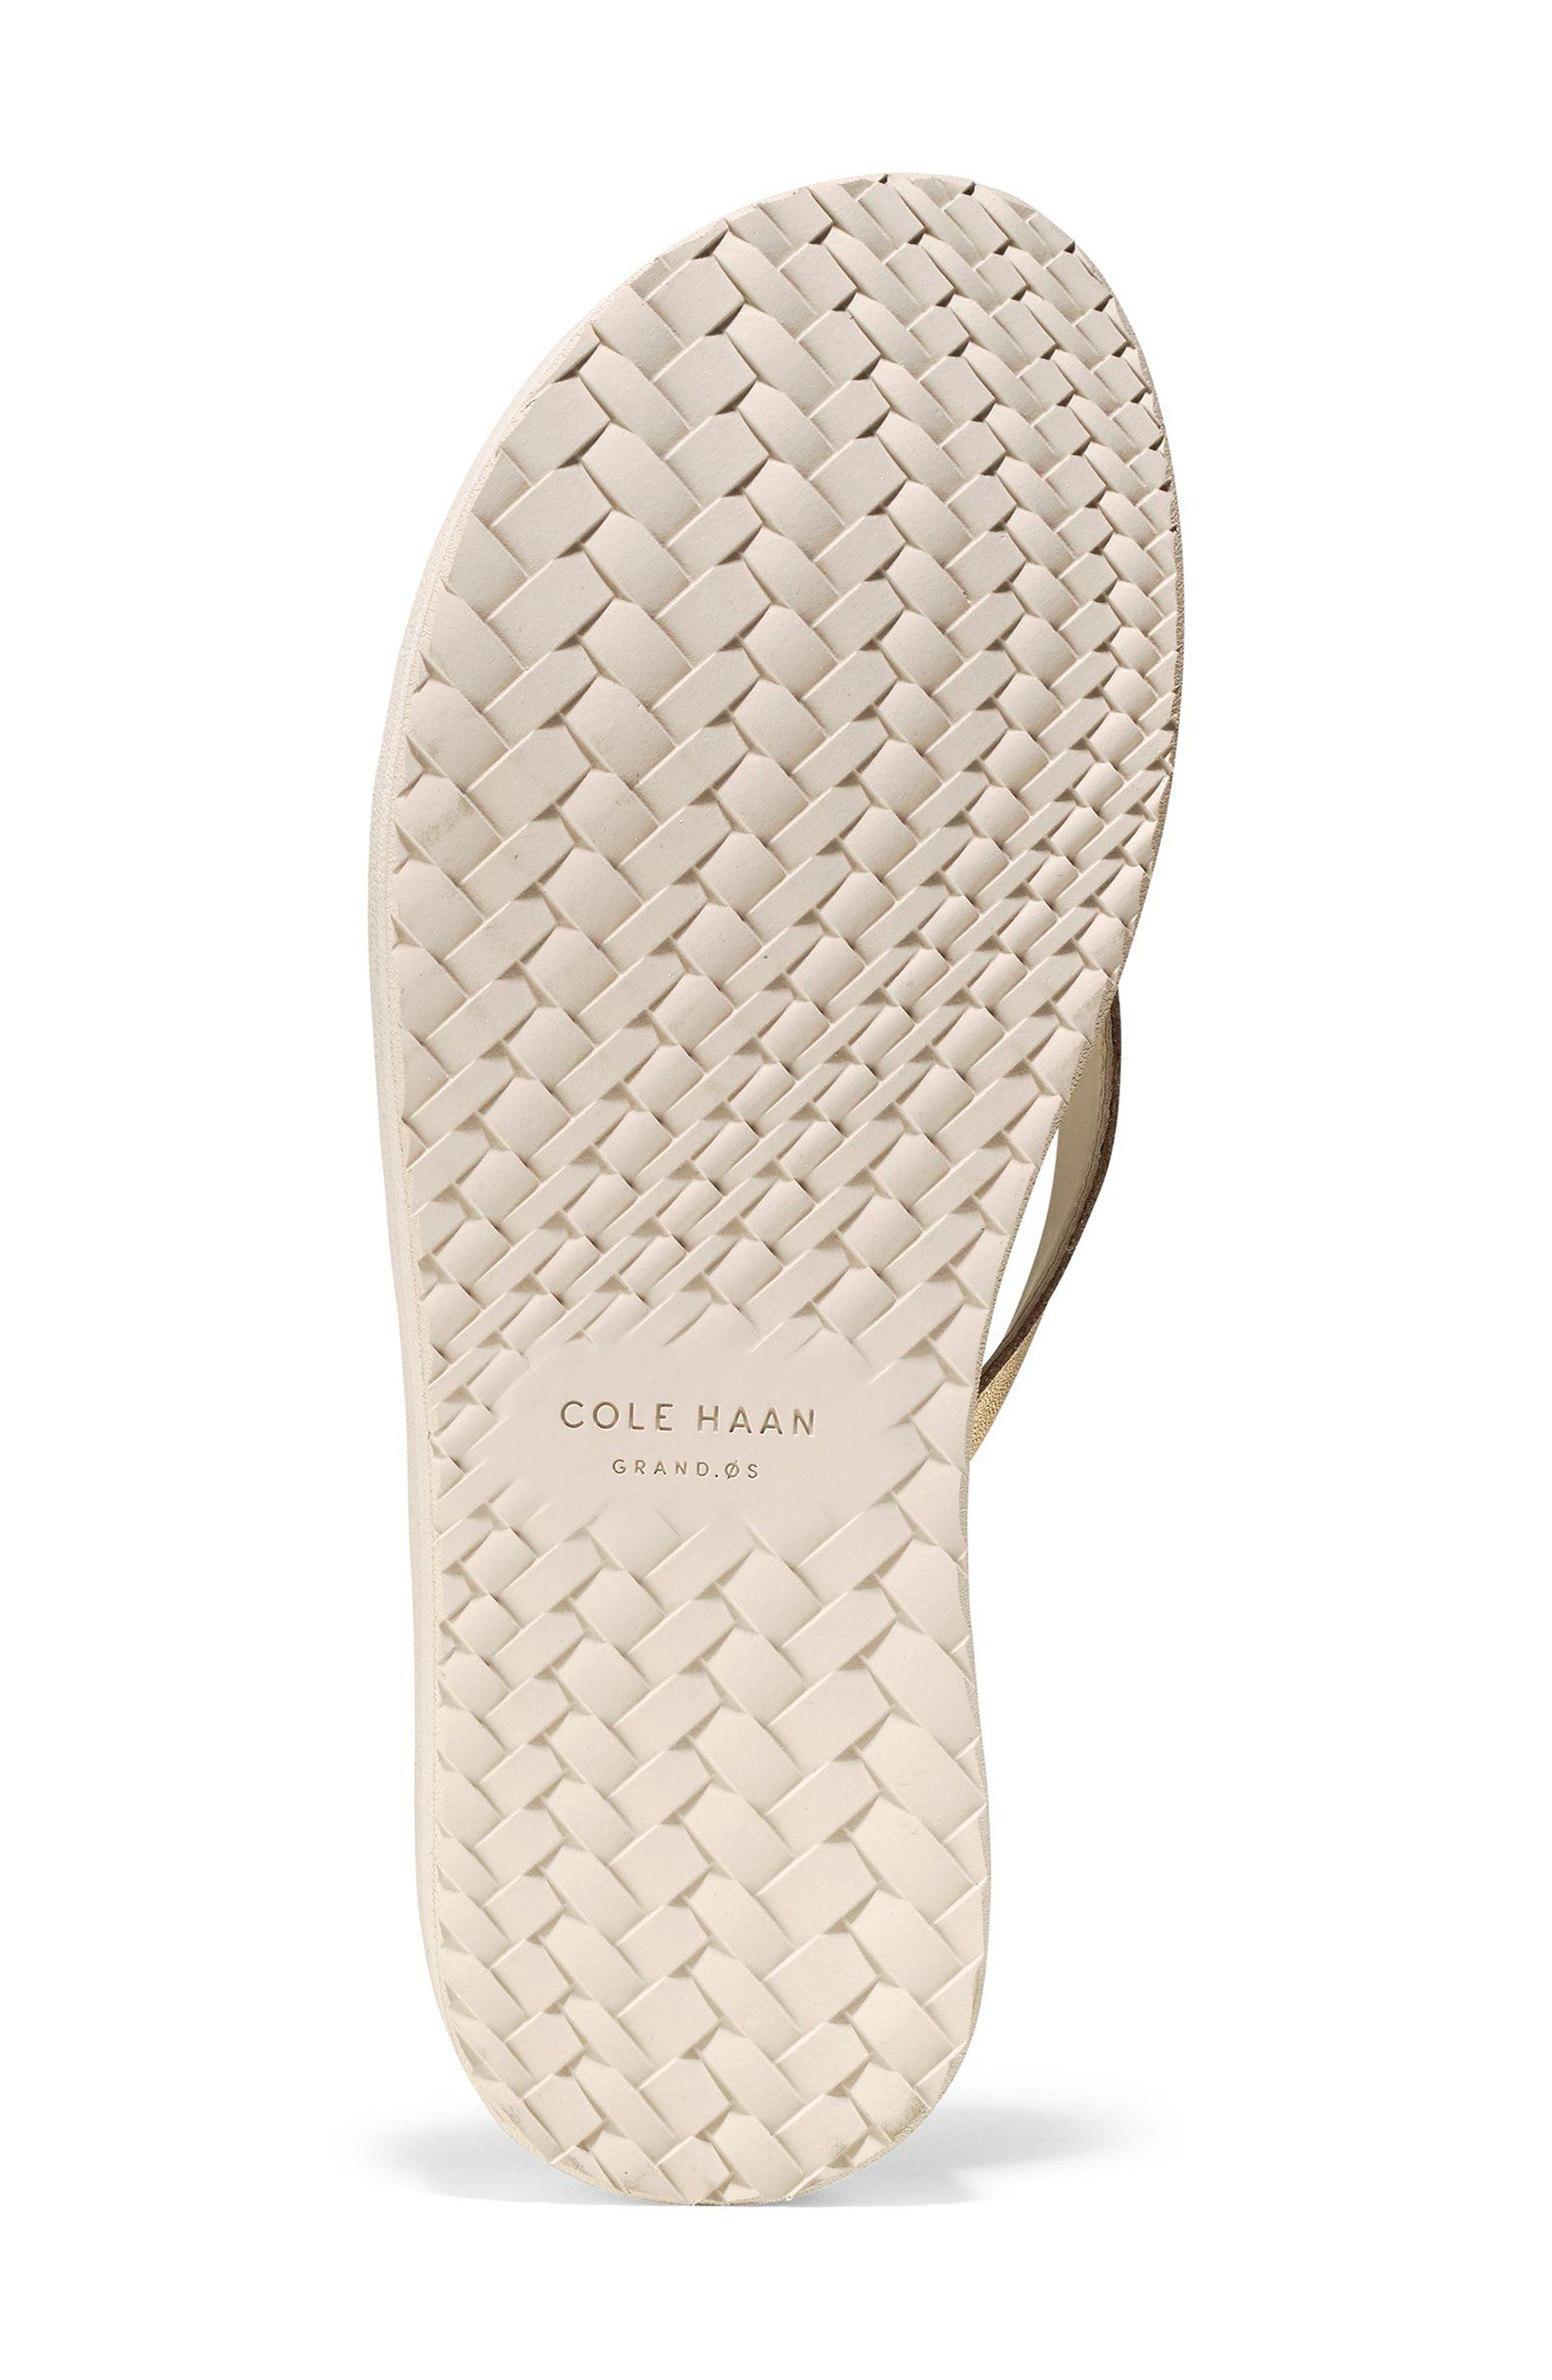 Lobster Wedge Flip Flop,                             Alternate thumbnail 6, color,                             Gold/ Pumice Stone Leather